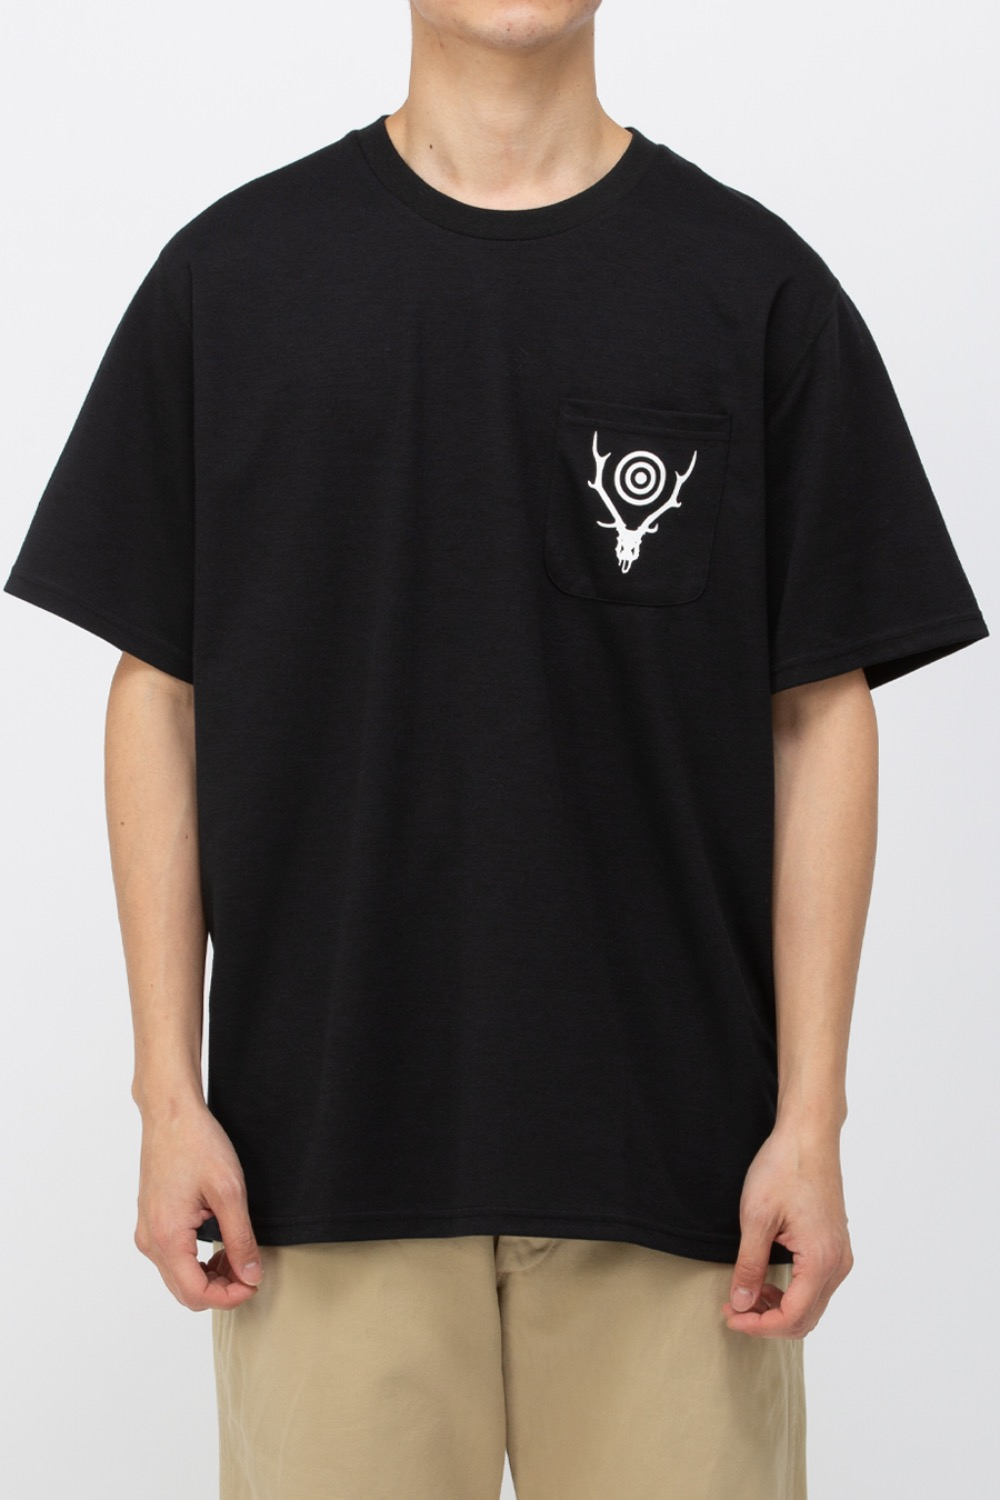 S/S ROUND POCKET TEE - CIRCLE HORN